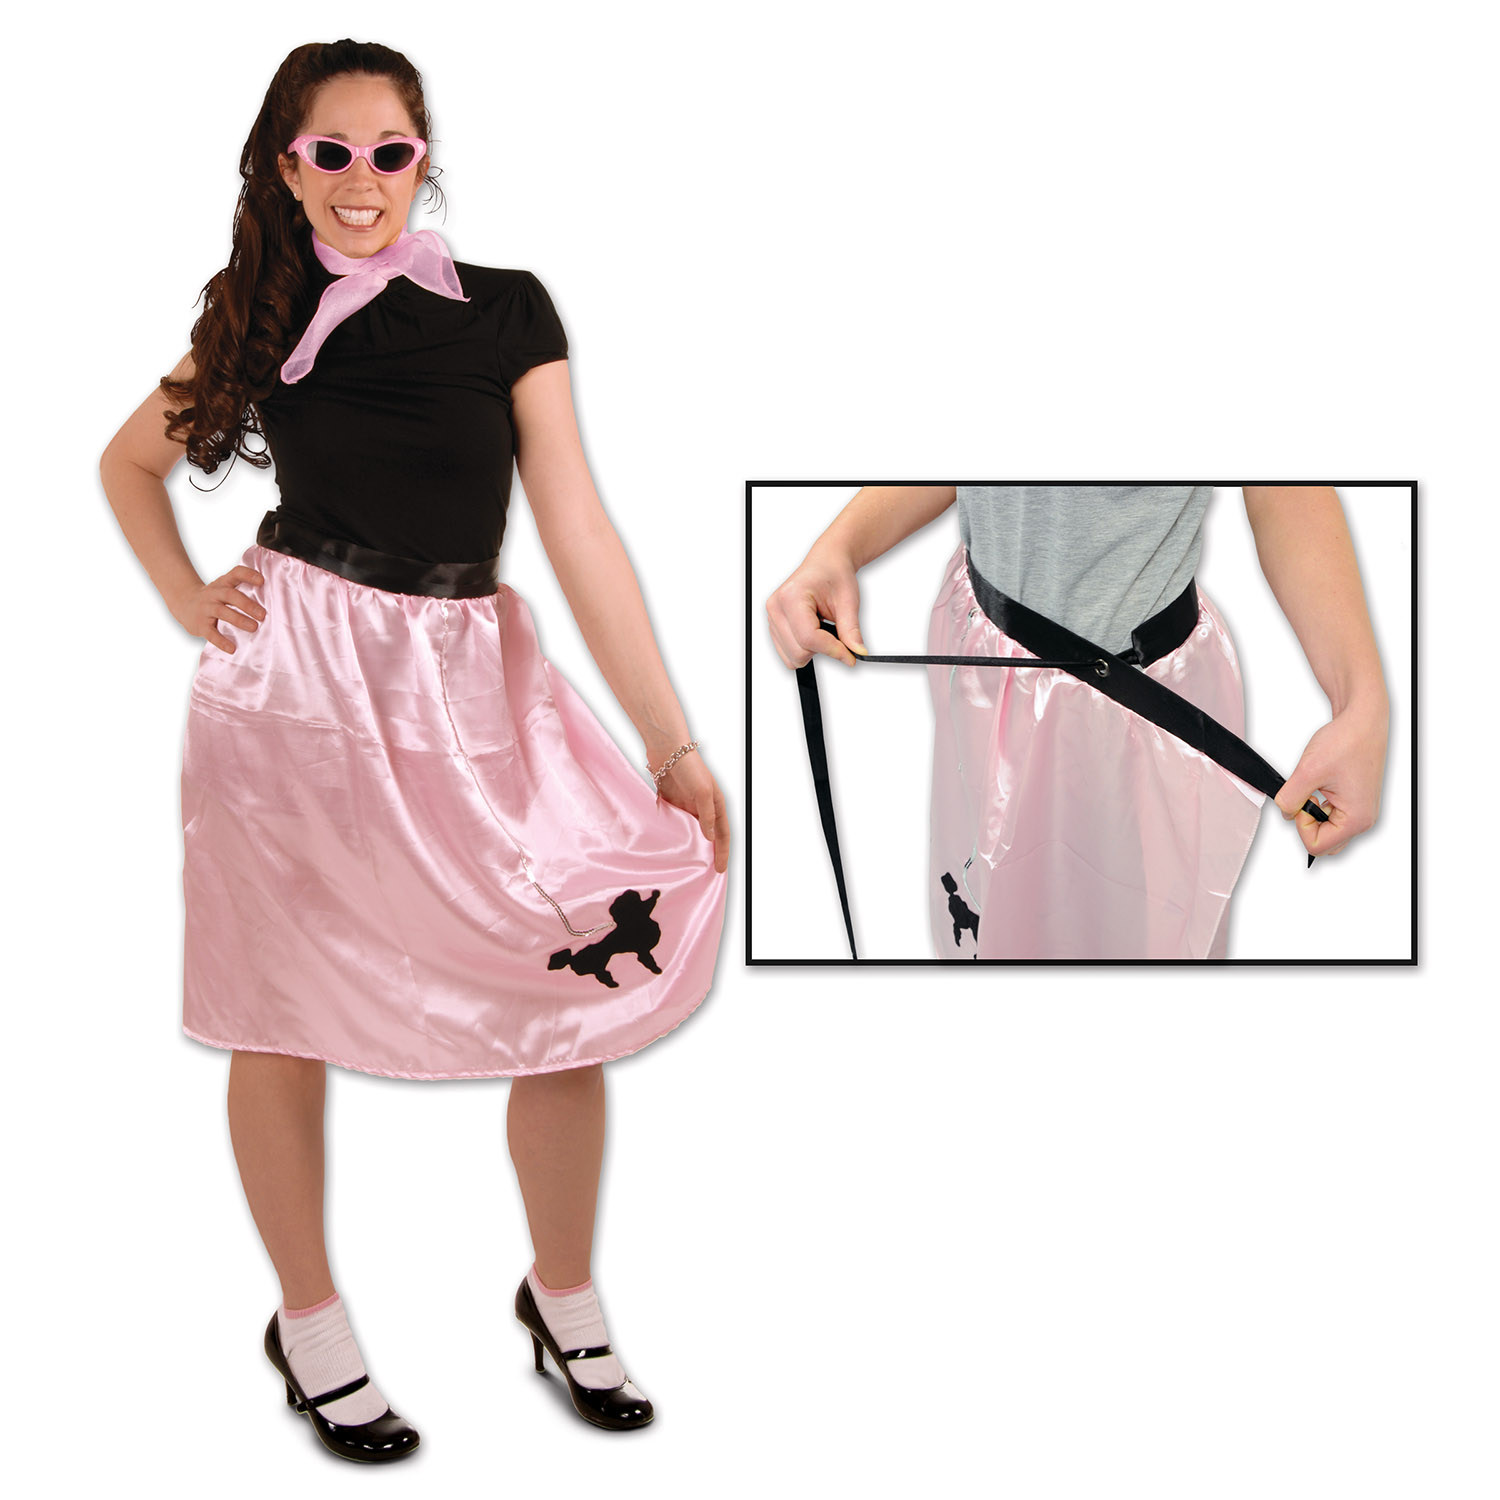 1950s style pink poodle skirt